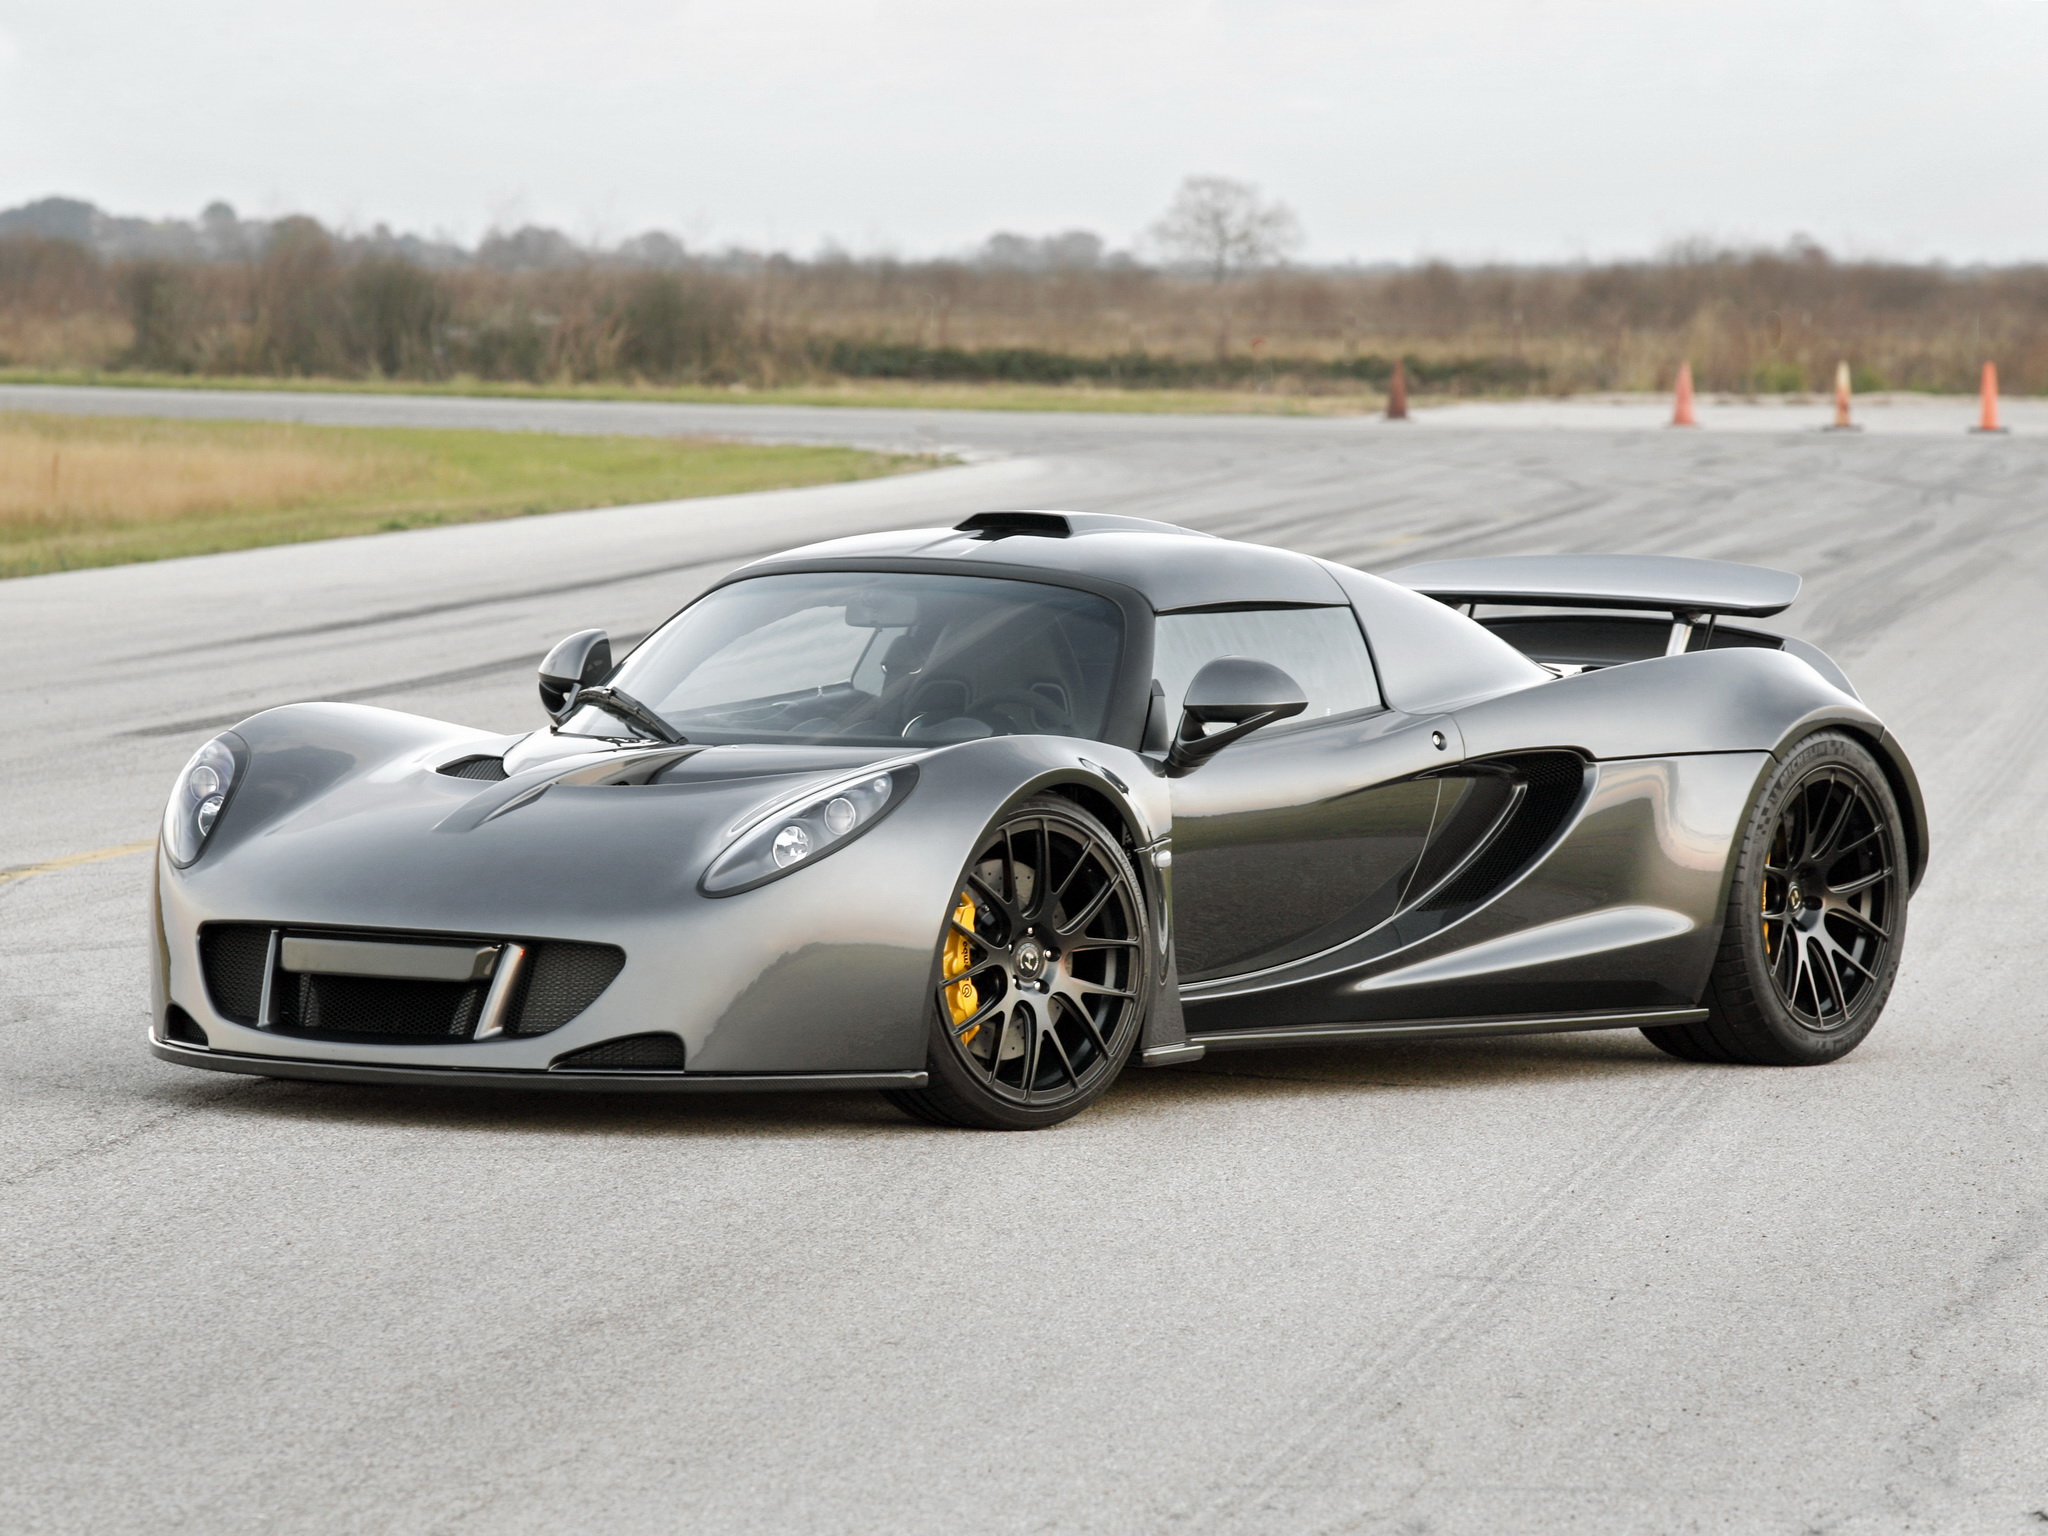 Hennessey Venom Gt HD Wallpapers Backgrounds 2048x1536